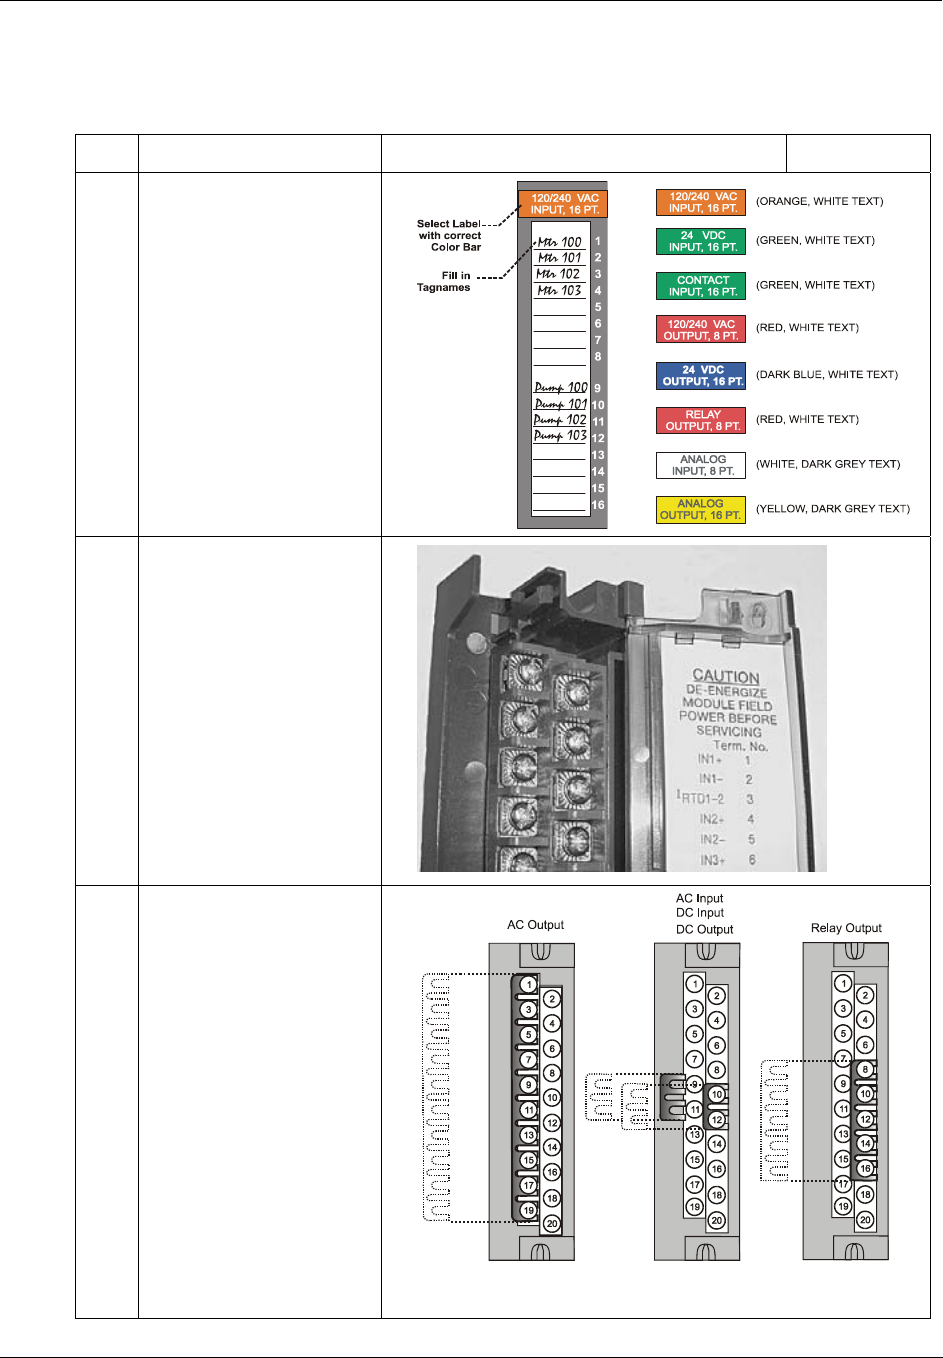 c587600b 6ac7 4295 9e7b 8331d2b01981 bg49 page 73 of honeywell network card hc900 user guide manualsonline com  at virtualis.co